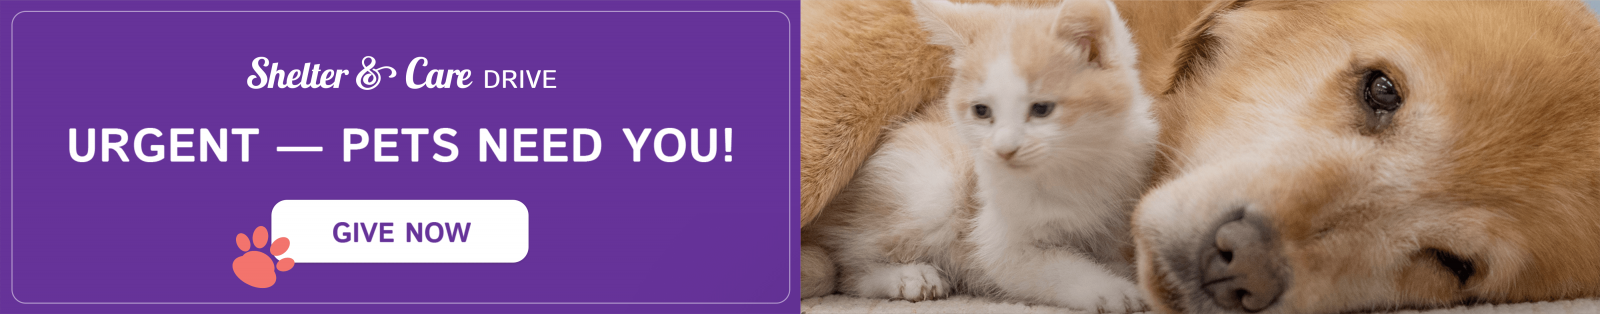 URGENT- PETS NEED YOU! - GIVE NOW